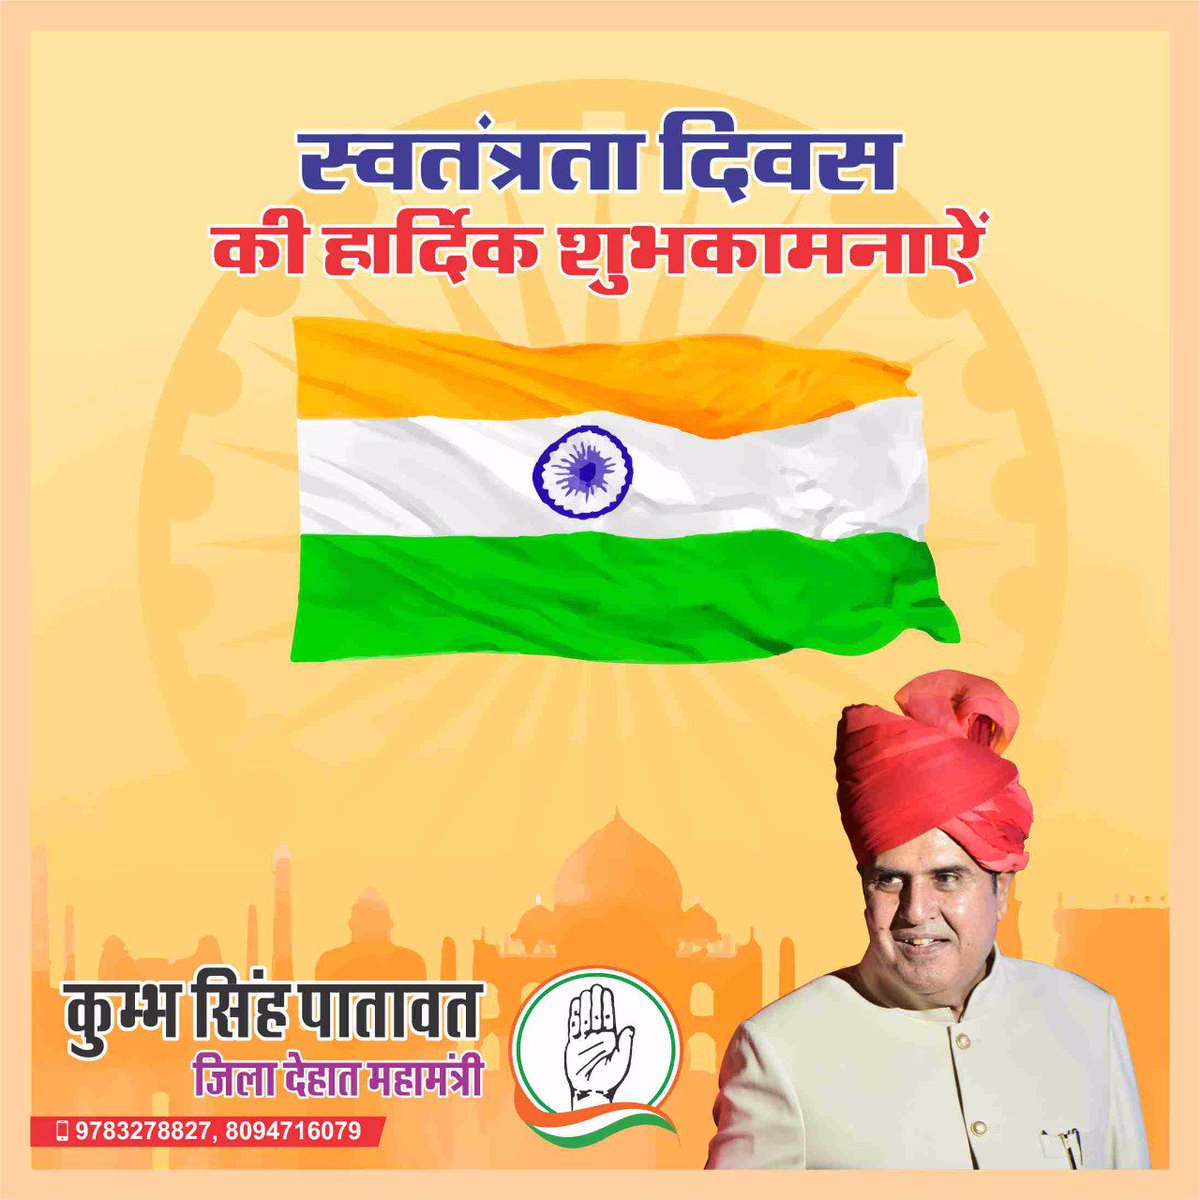 On this Independence Day my best wishes to all Indians. As we celebrate our independence as a nation, let us remember all those brave men and women, our freedom fighters, whose sacrifices and dedication helped us win our independence. Jai Hind.  #HappyIndependenceDay2018